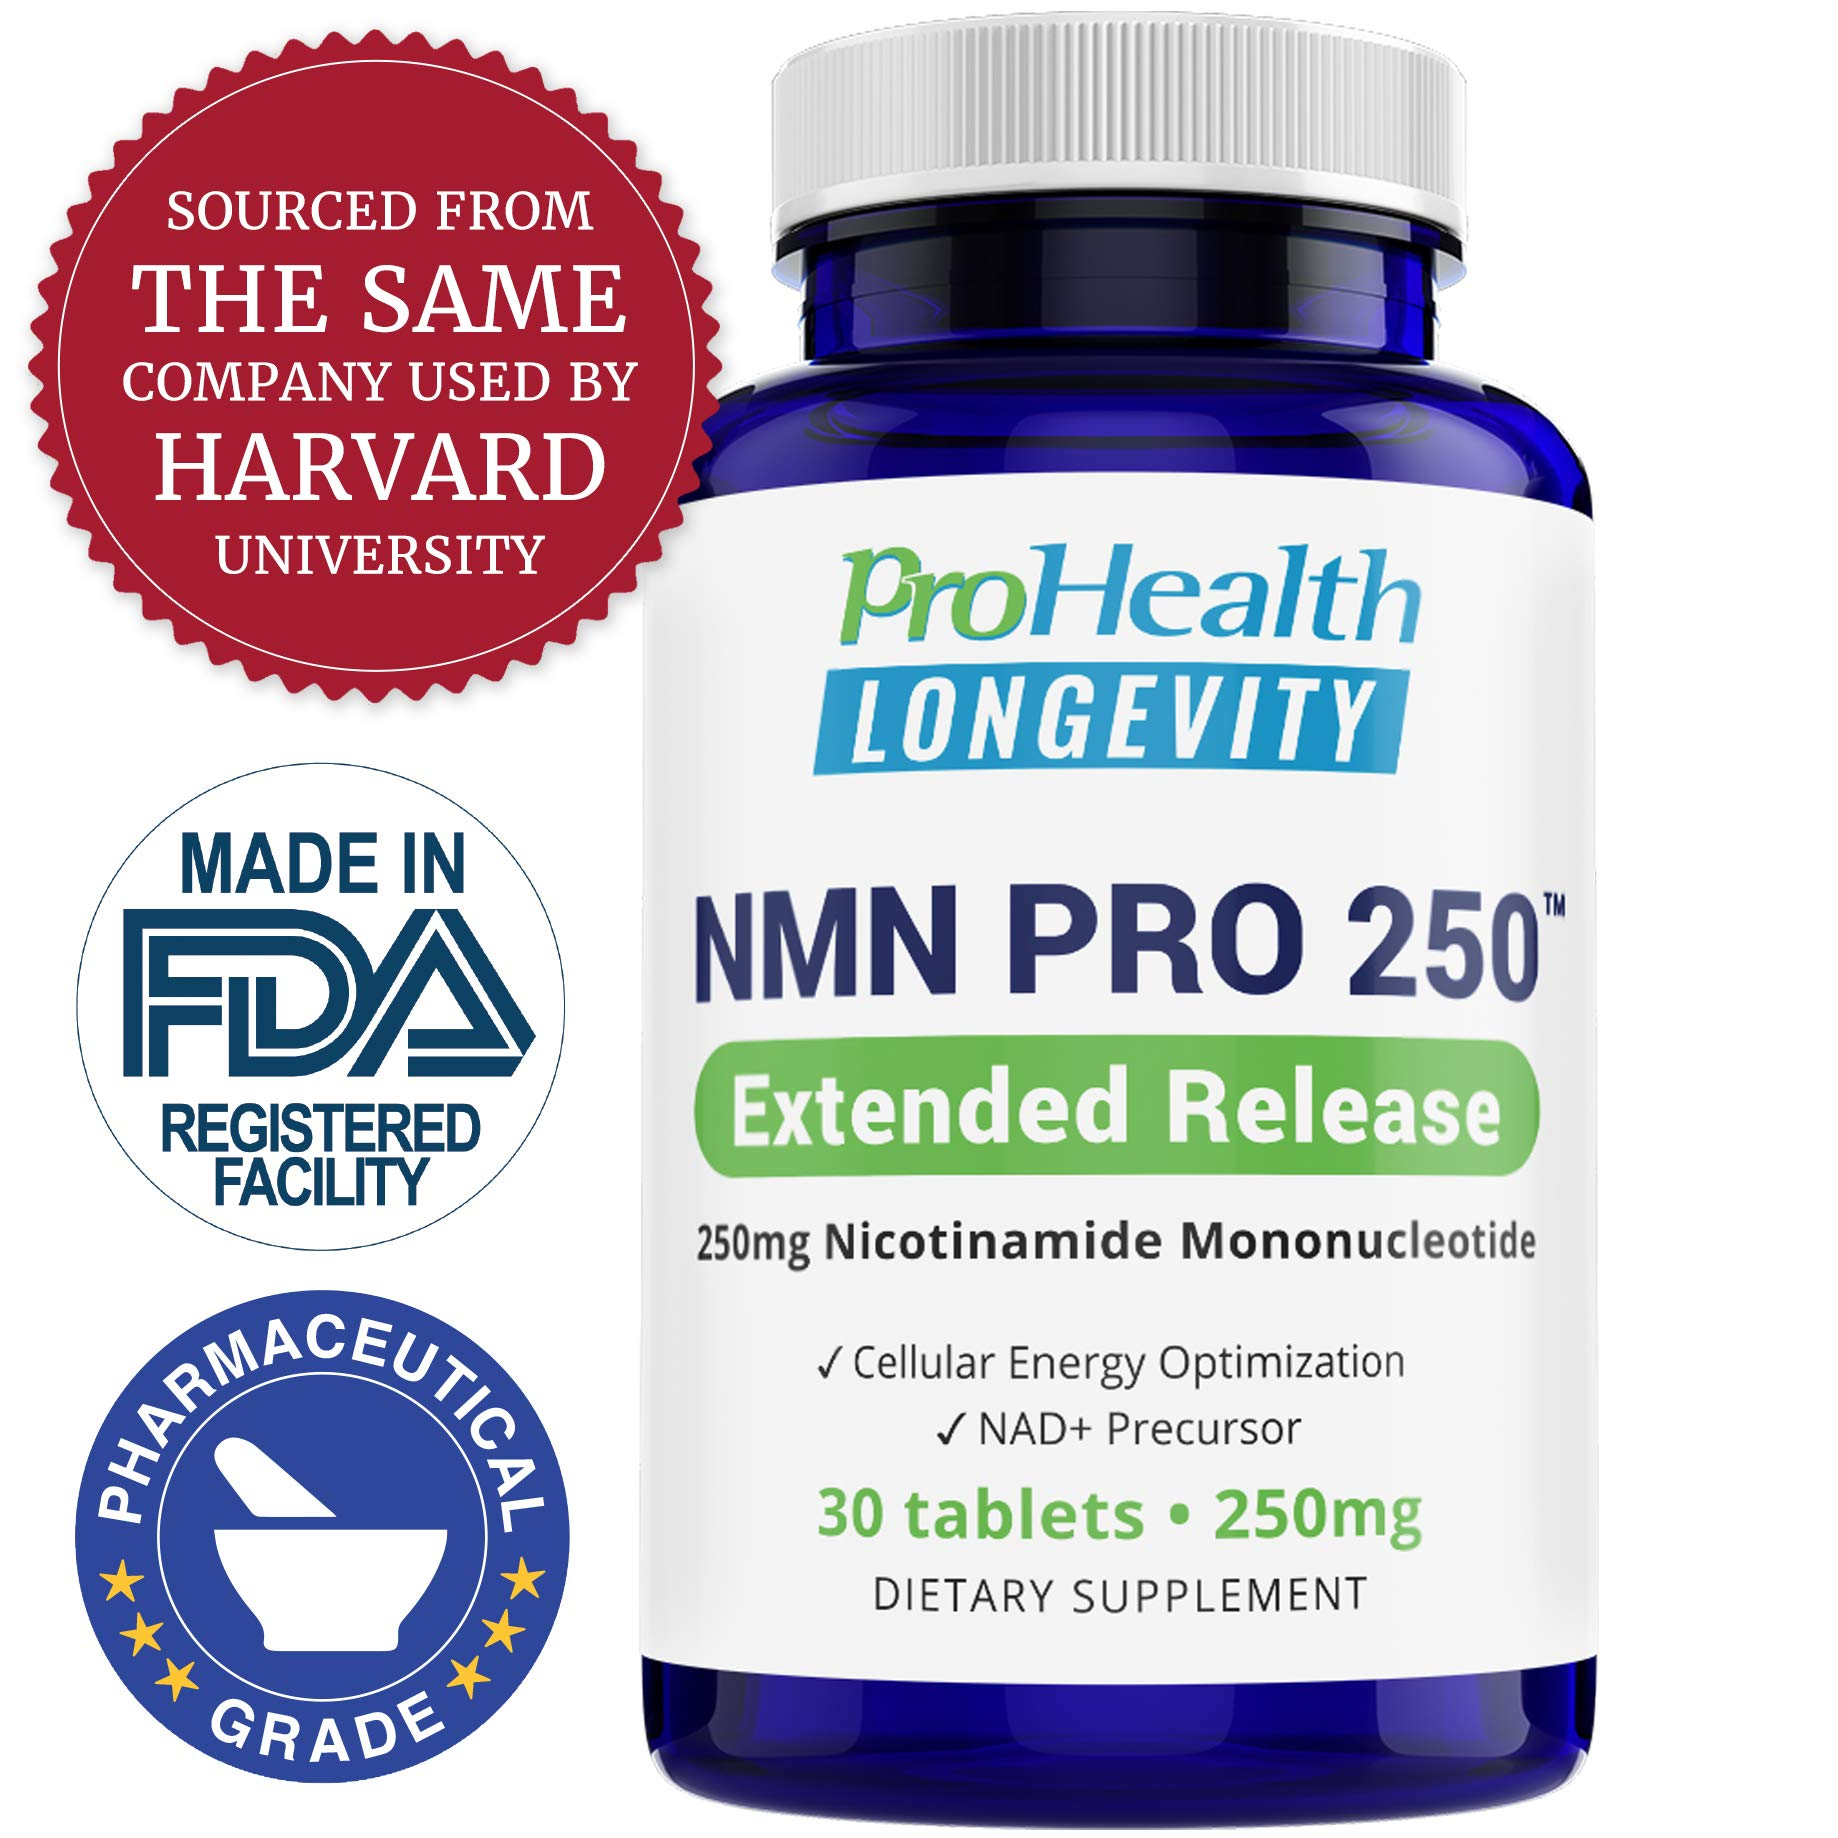 ProHealth NMN Pro 250 Extended Release (250 mg nicotinamide mononucleotide, 30 Tablets) NAD+ Precursor | Supports Anti-Aging, Longevity and Energy | Non-GMO by ProHealth